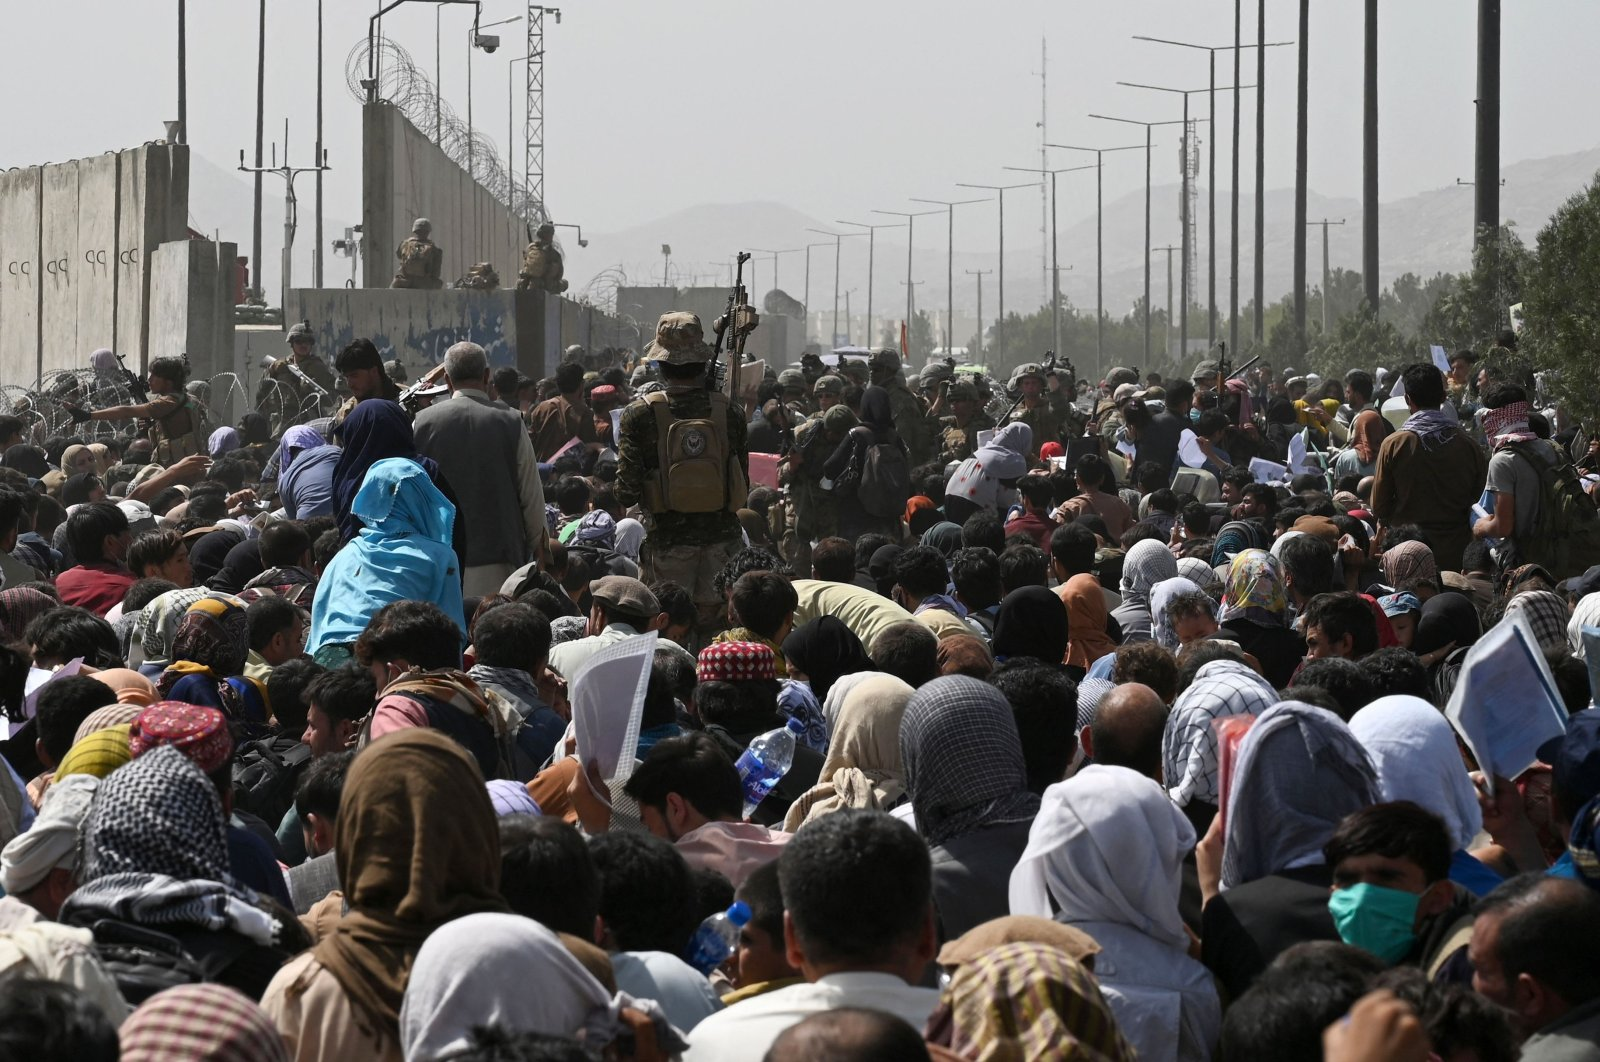 Afghans gather on a roadside near the military part of the airport in Kabul, Afghanistan, Aug. 20, 2021, hoping to flee from the country after the Taliban's military takeover. (AFP Photo)